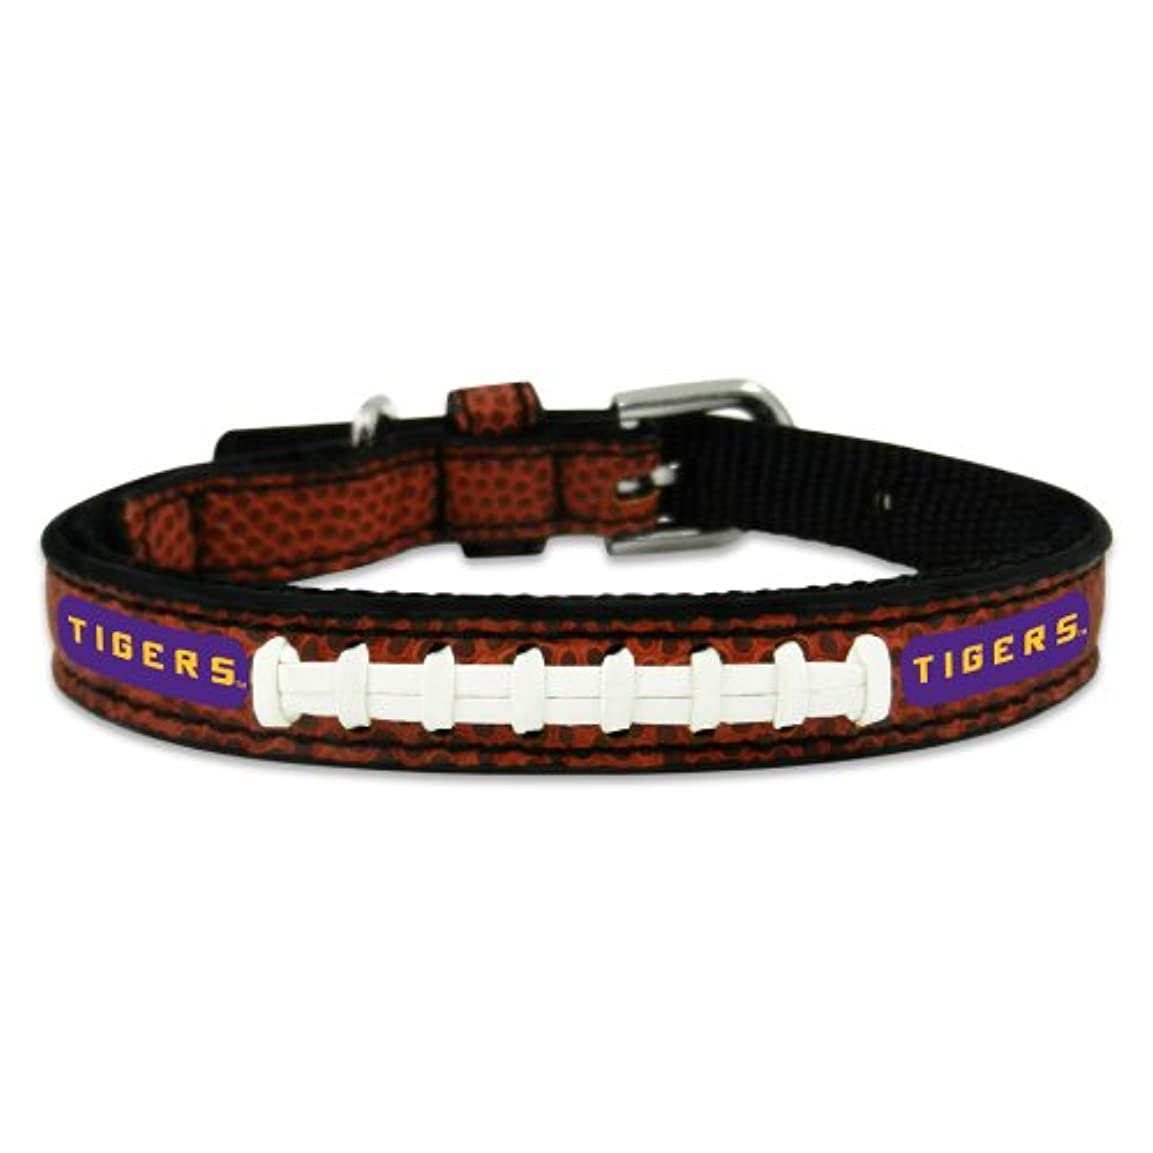 メダルメダルメニューLSU Tigers Classic Leather Toy Football Collar